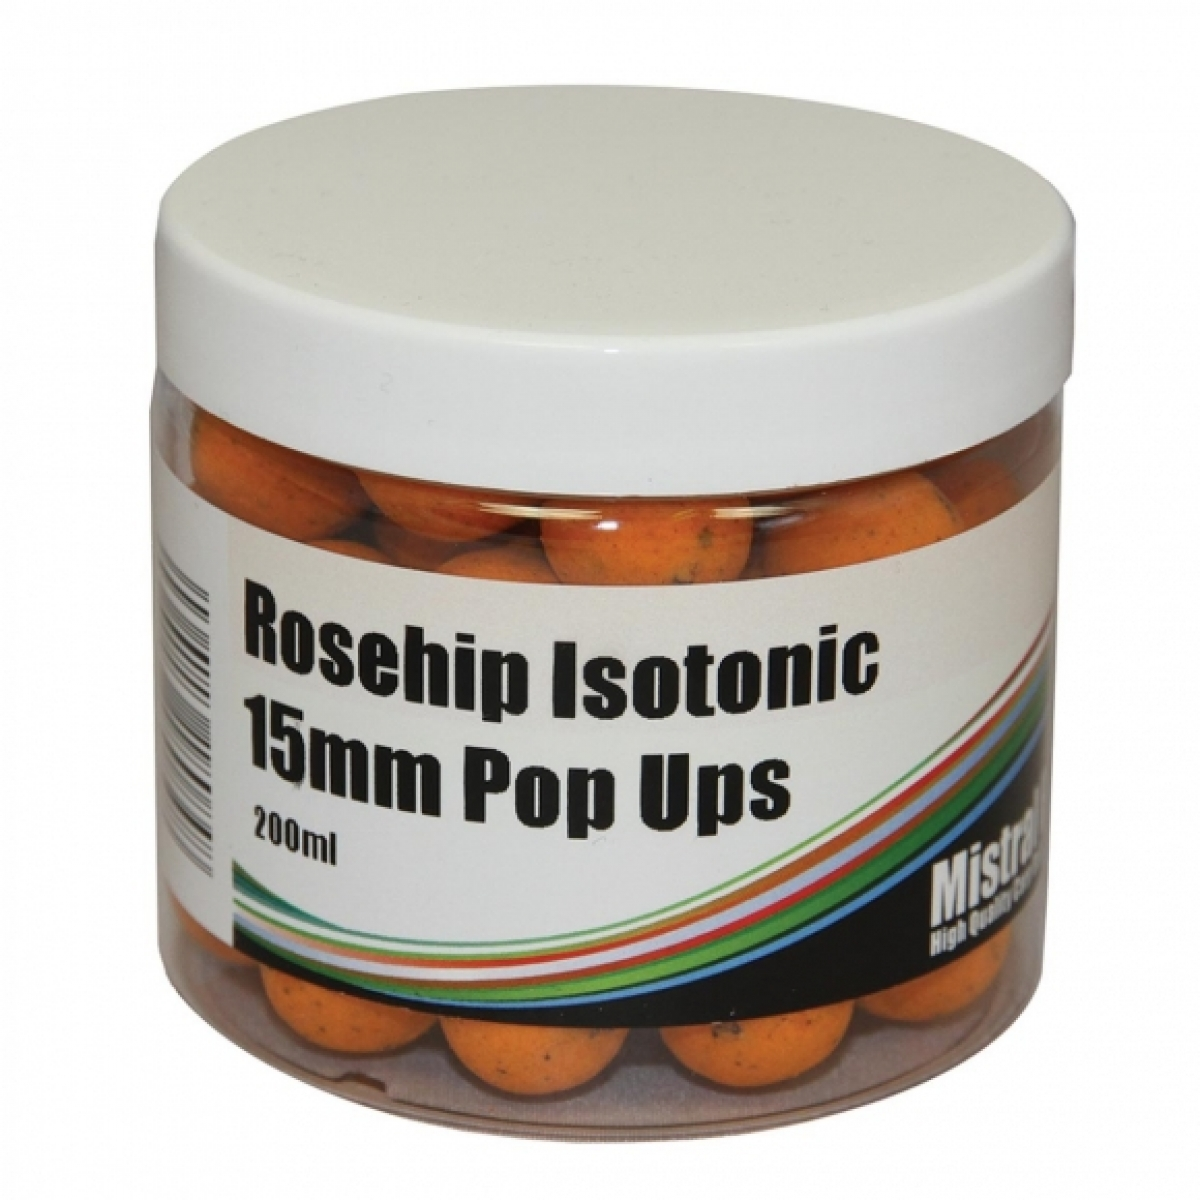 Rosehip pop up